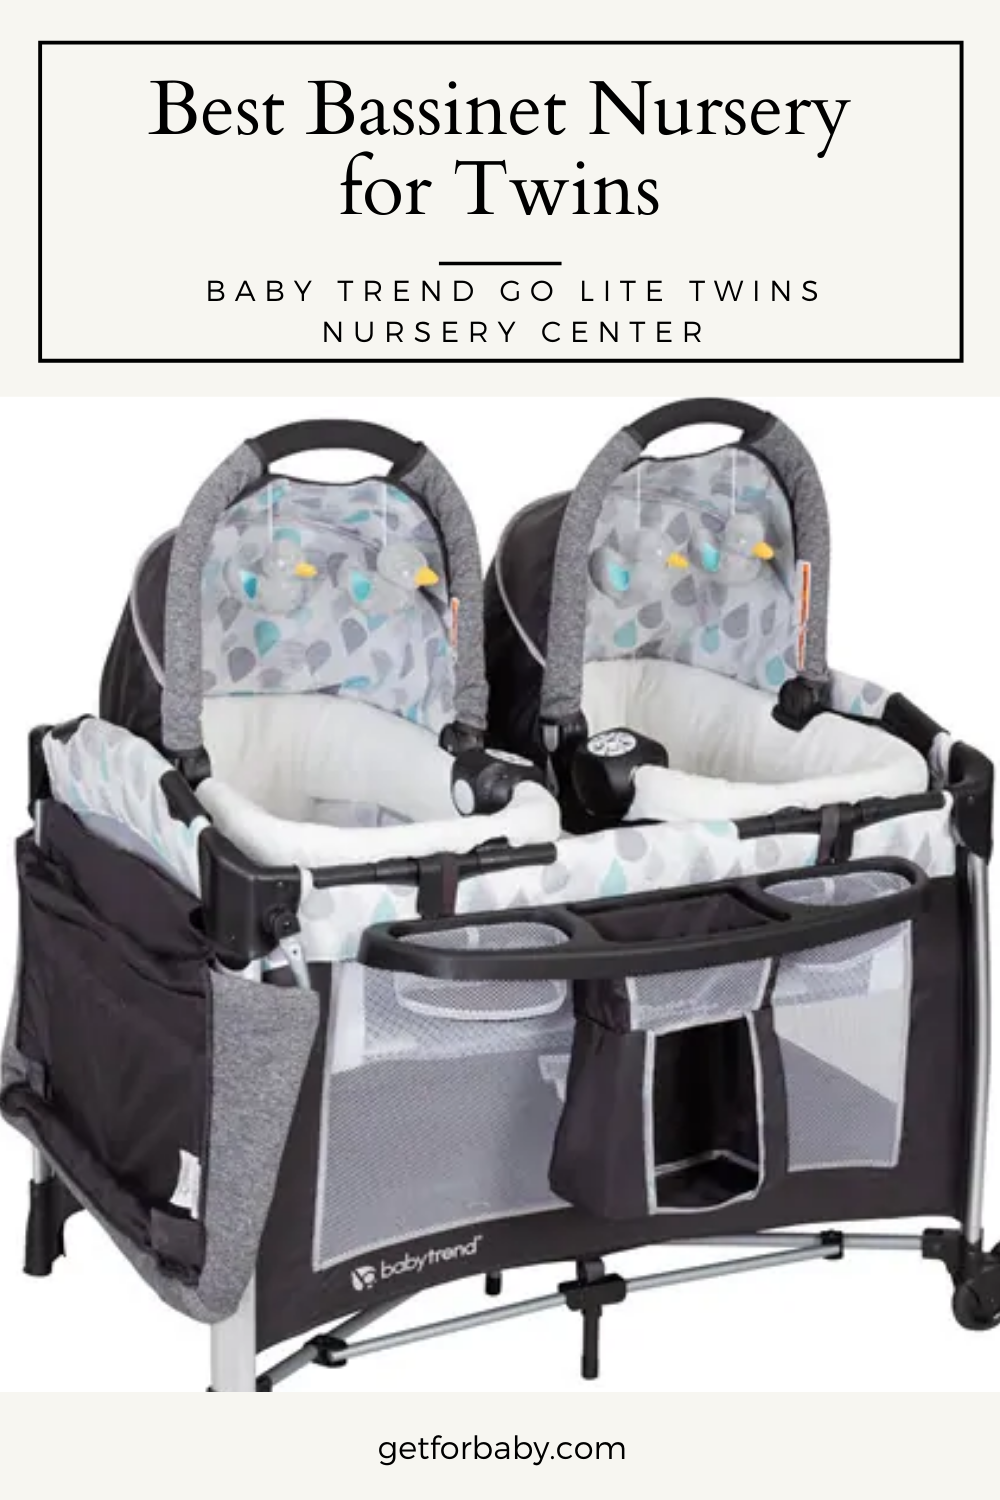 Baby Trend Pack N Play : trend, Trend, Twins, Nursery, Center, Twins,, Trend,, Bassinet